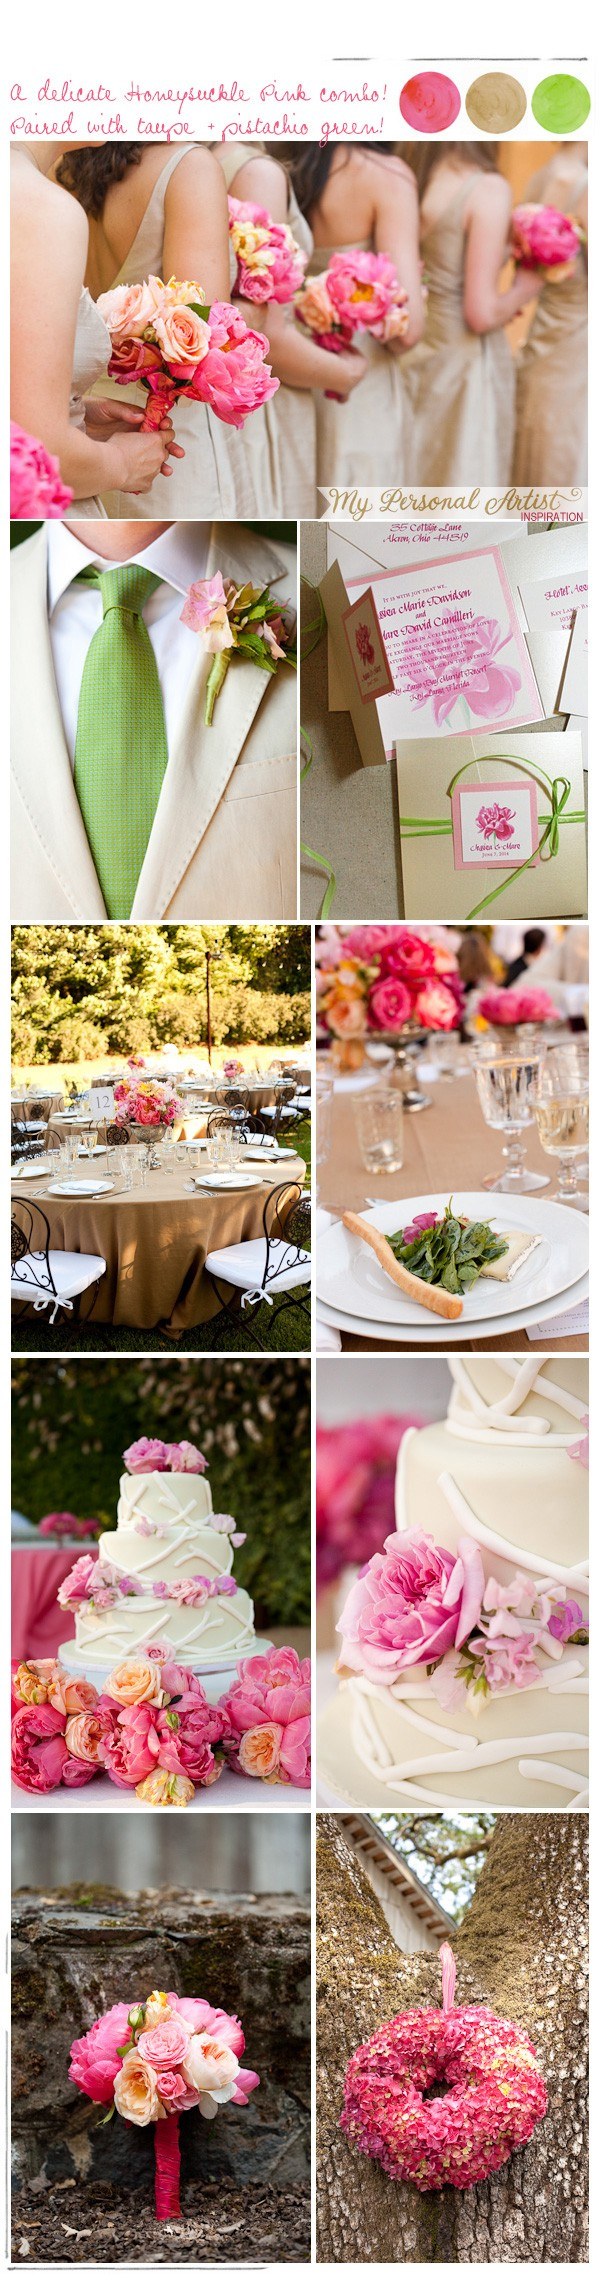 Pink wedding inspiration | www.mospensstudio.com